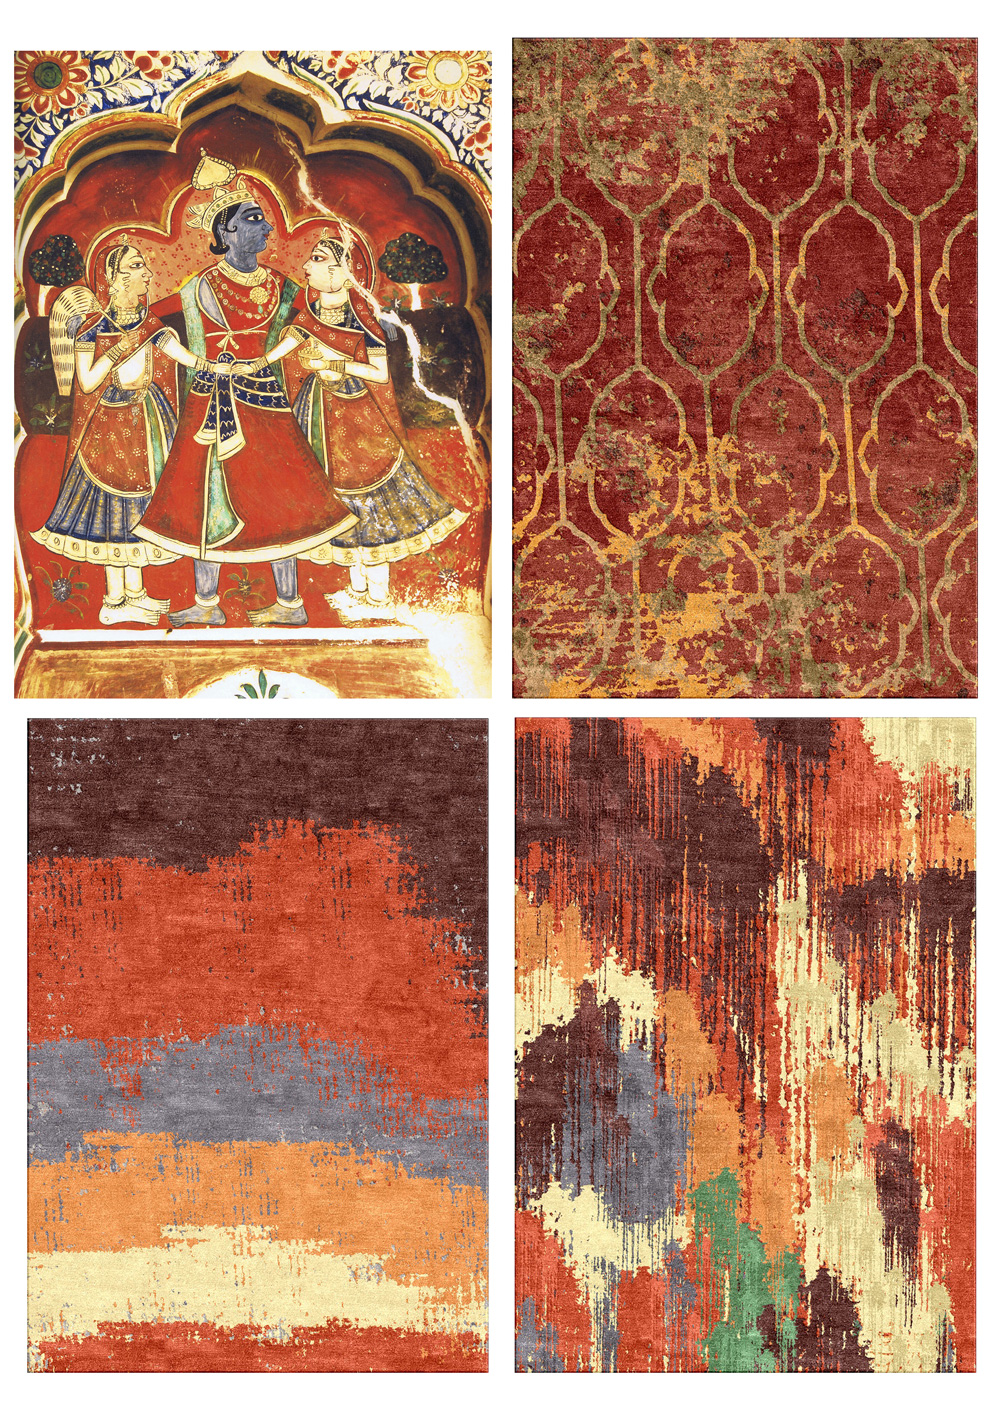 Sheefalika Misra, Painted Heritage collection for Jaipur, inspired by wall paintings at Morarka Haveli, Rajasthan